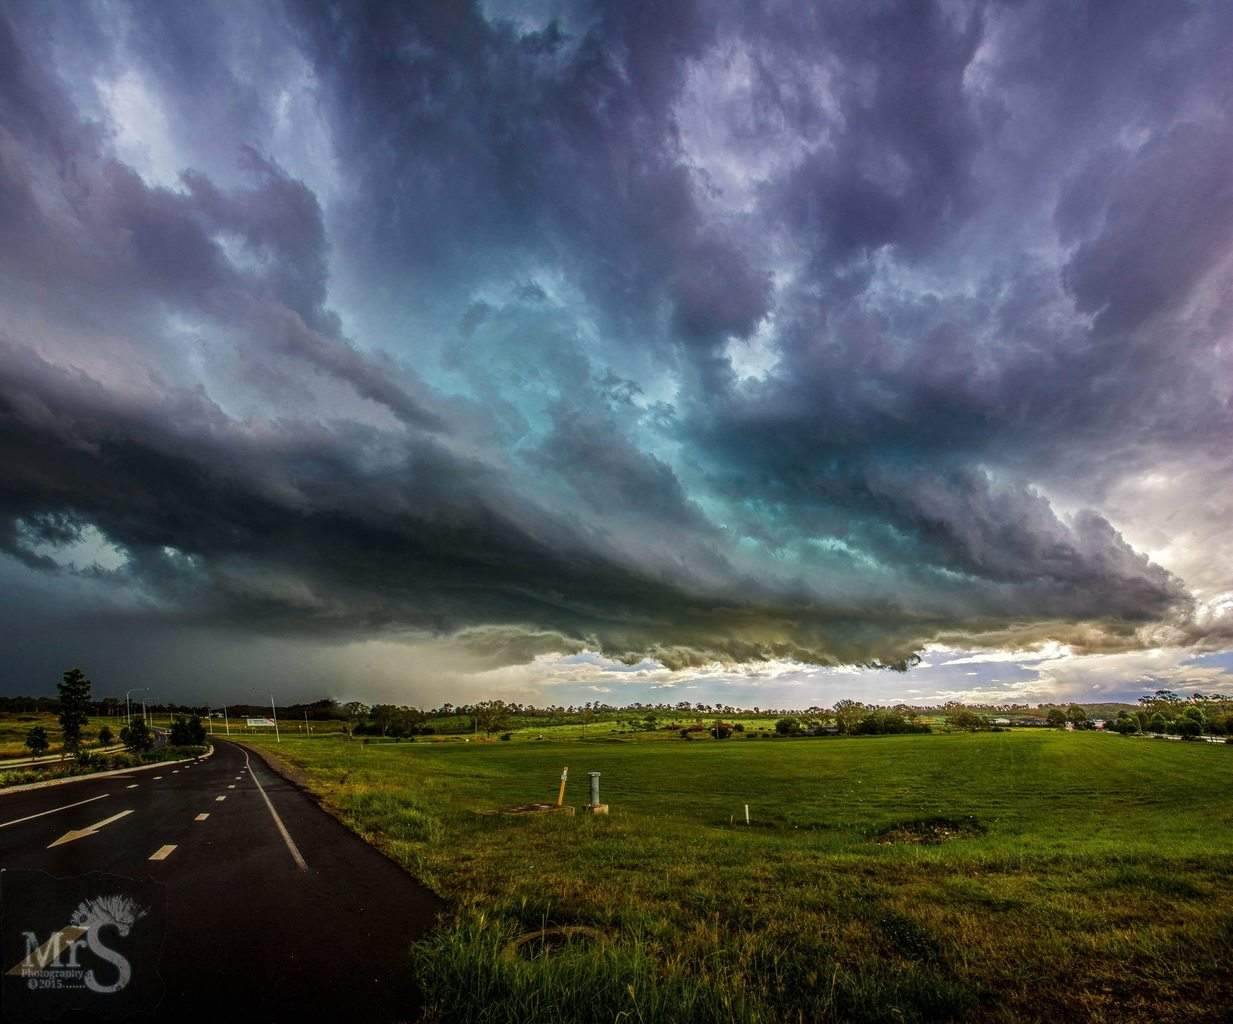 Incoming hail. Today a storm built up right near home. As the sun was lowering to set i expected it to go pink. But the light never reached so the nicest purple tinge happened amongst the blue/green instead. This is 6 x 10mm verticle images stitched.